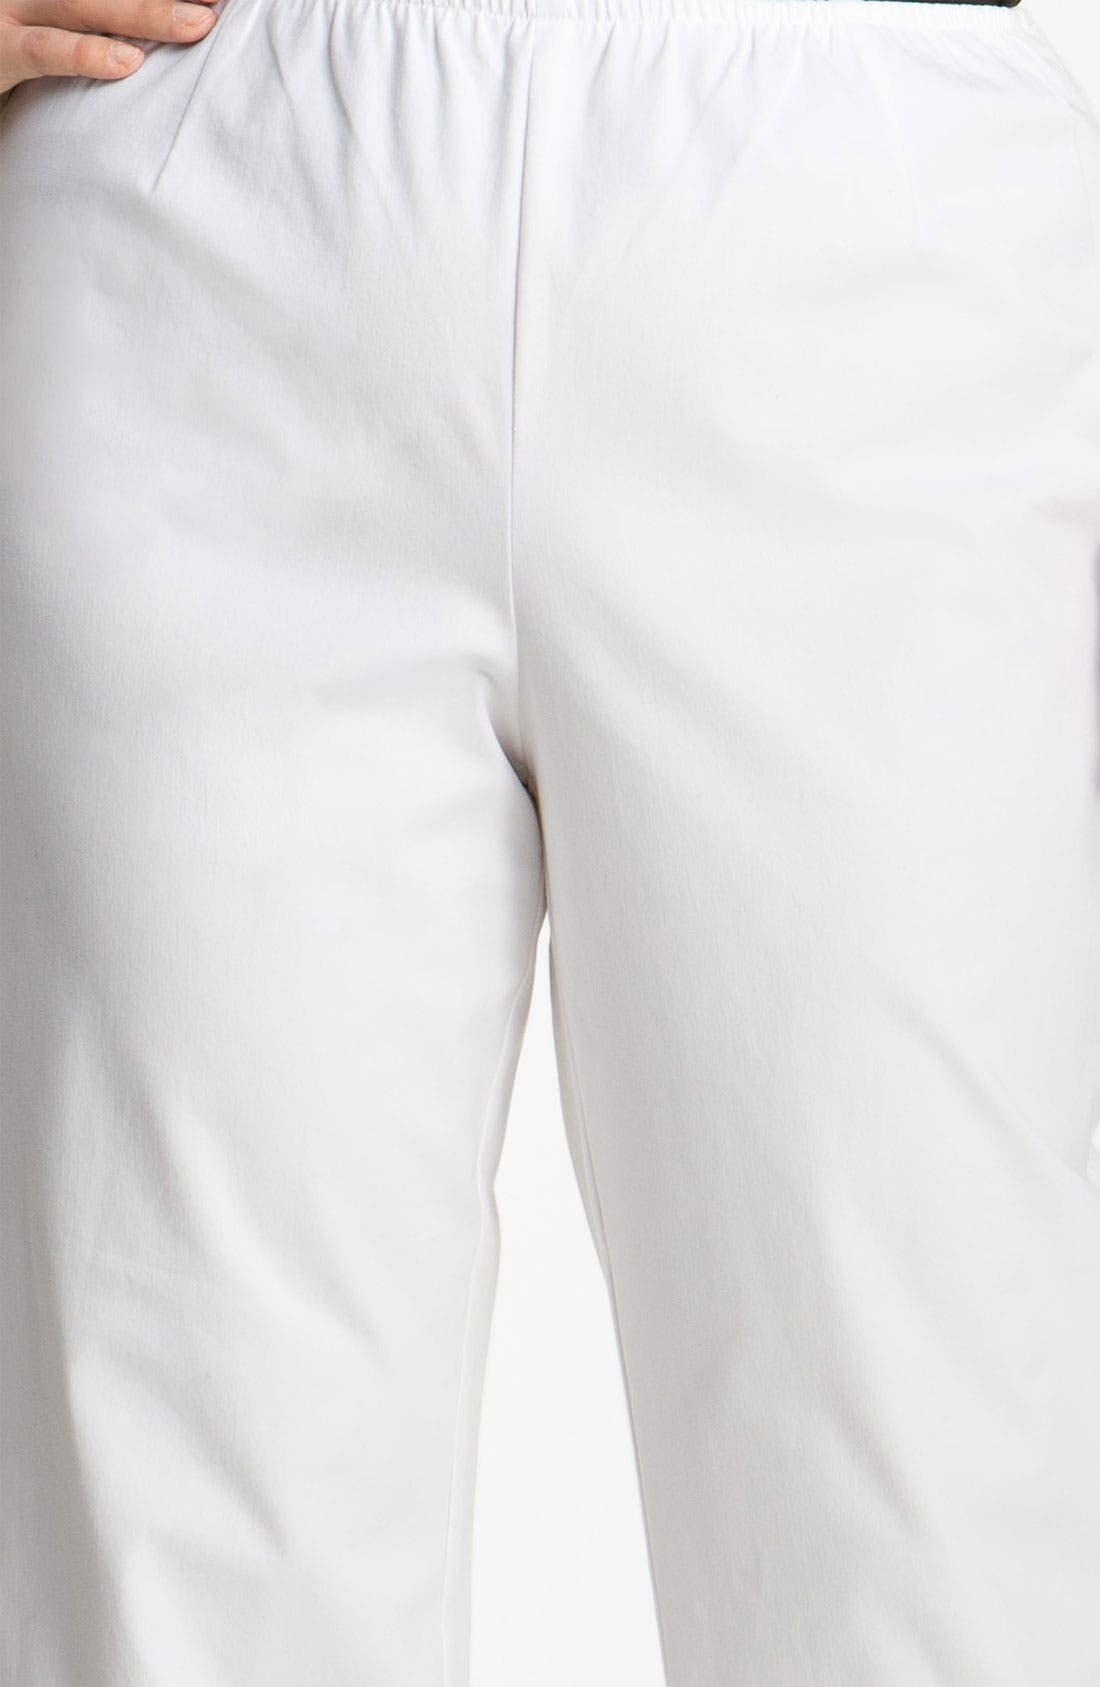 Alternate Image 3  - Eileen Fisher Stretch Organic Cotton Ankle Pants (Plus Size)